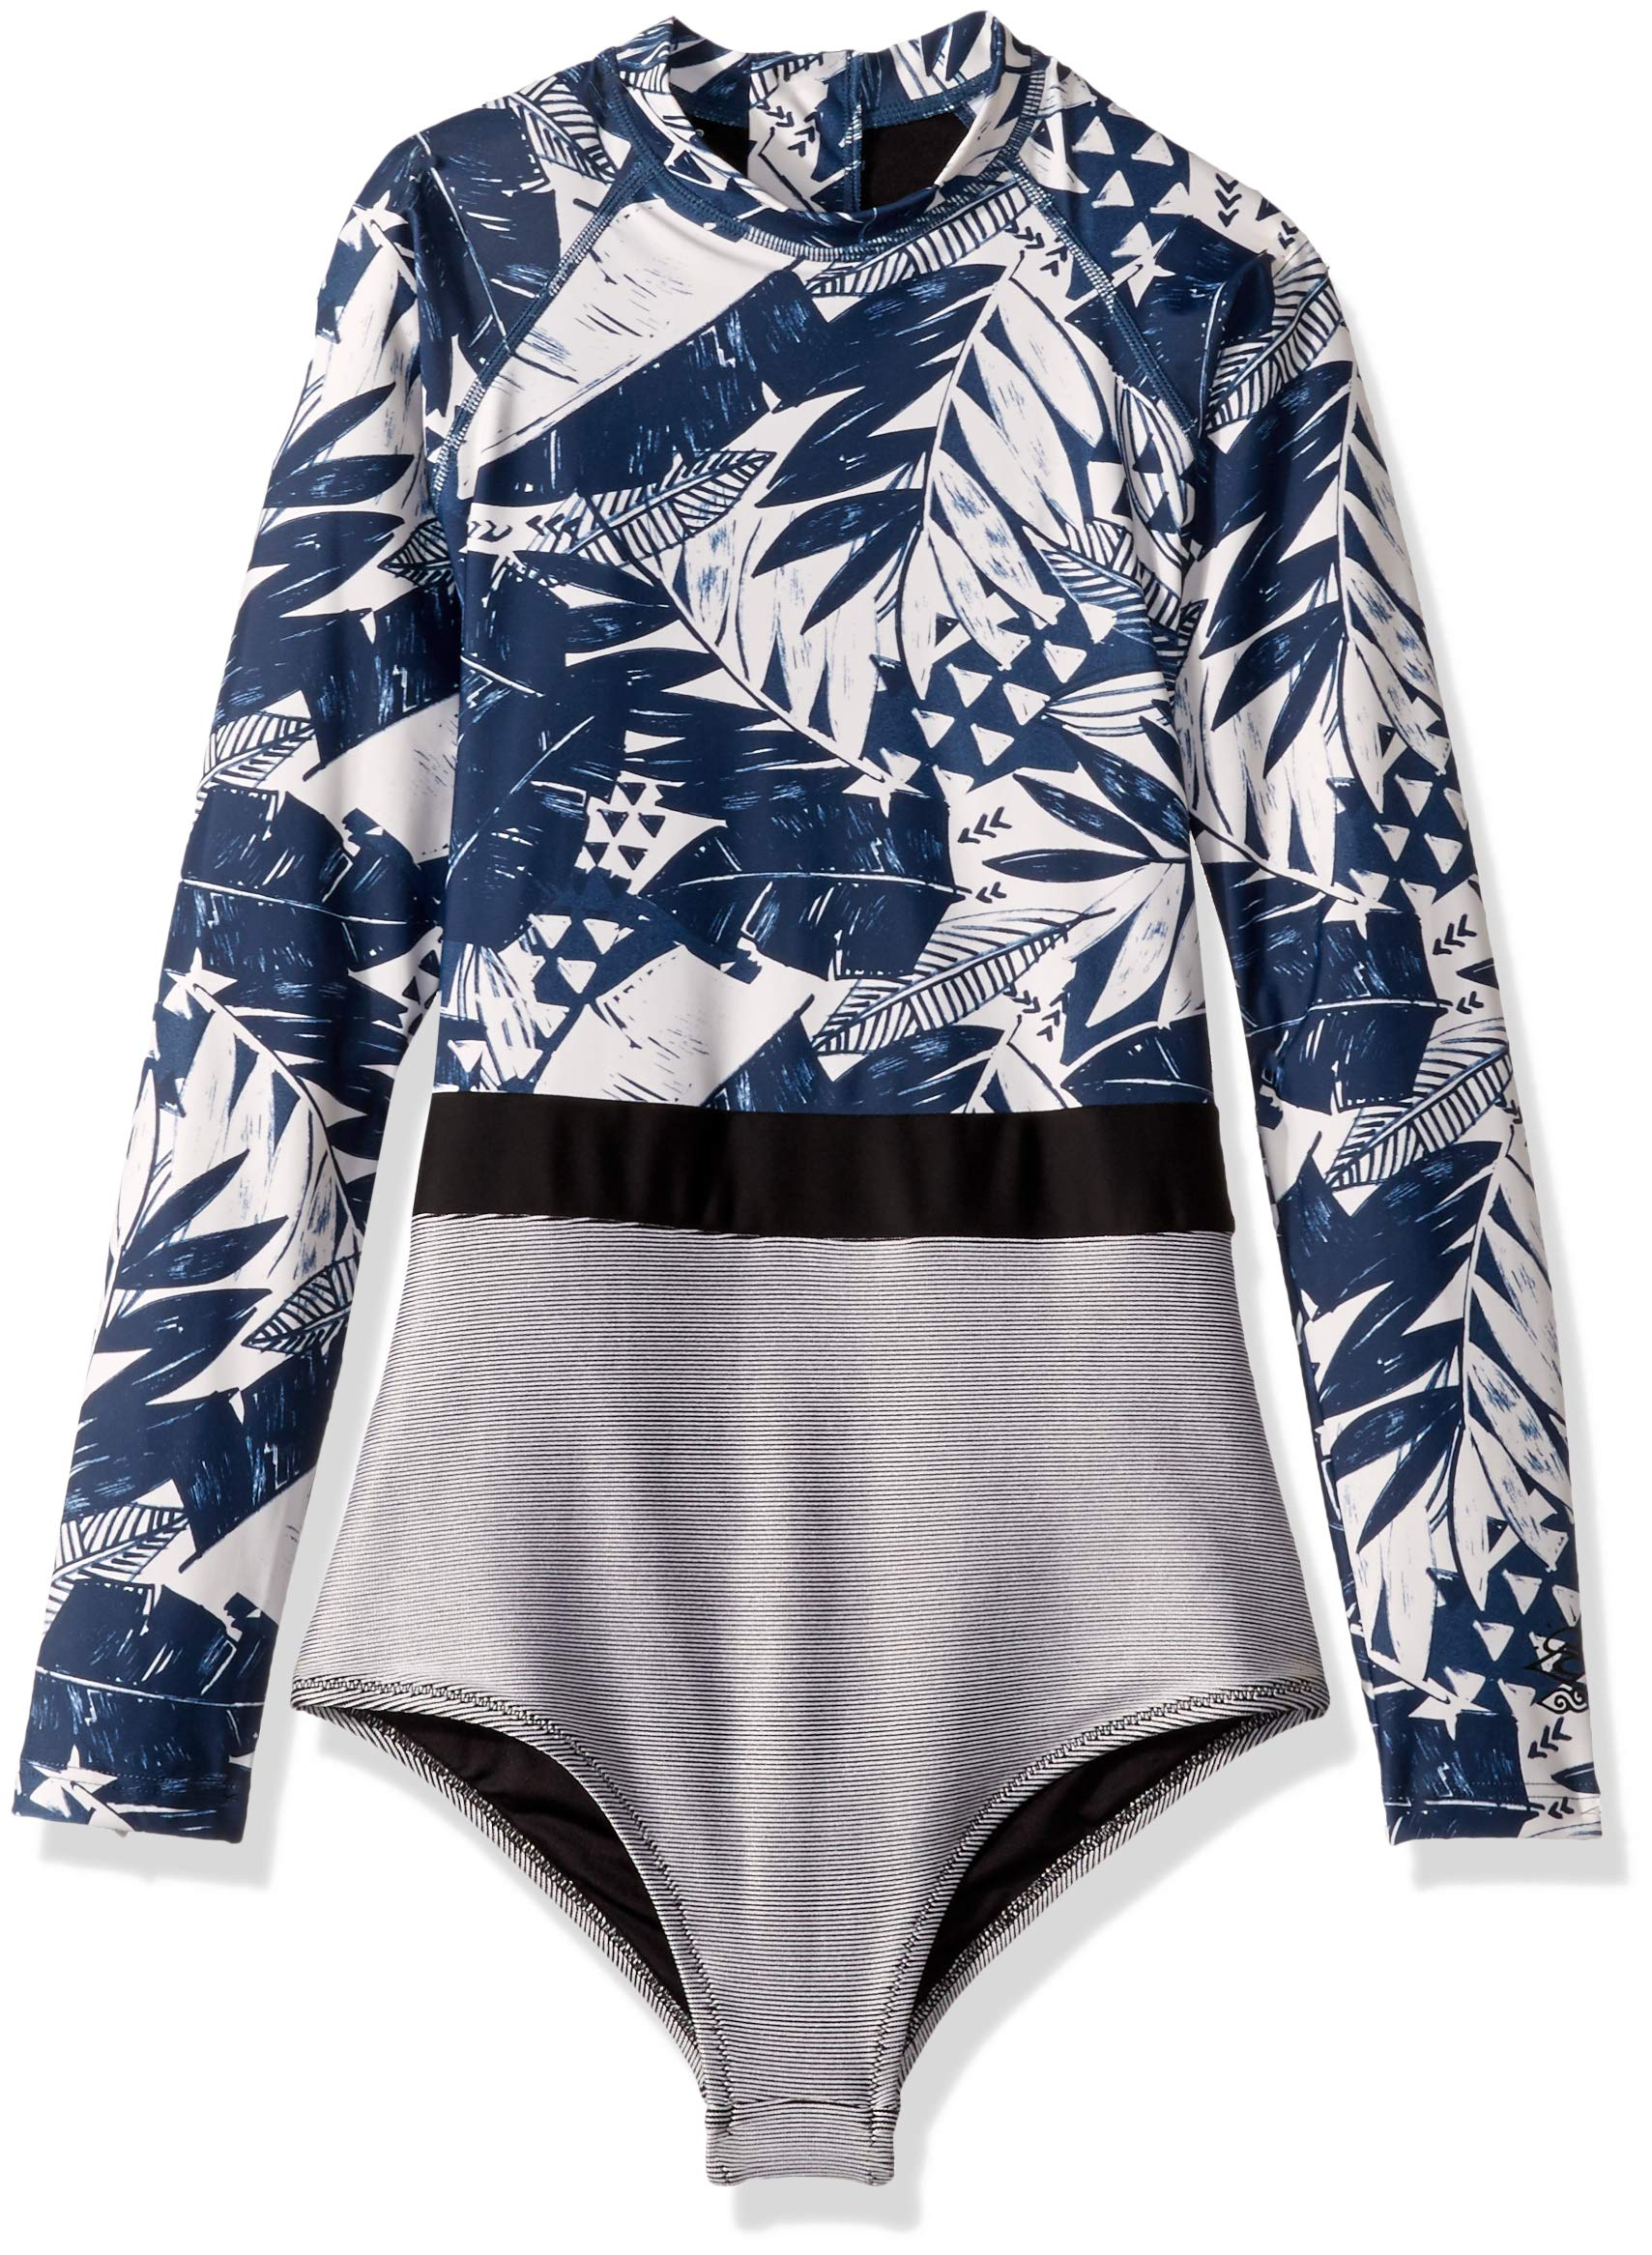 Rip Curl SEACHERS UV SURF Suit Rash GAURD by Rip Curl